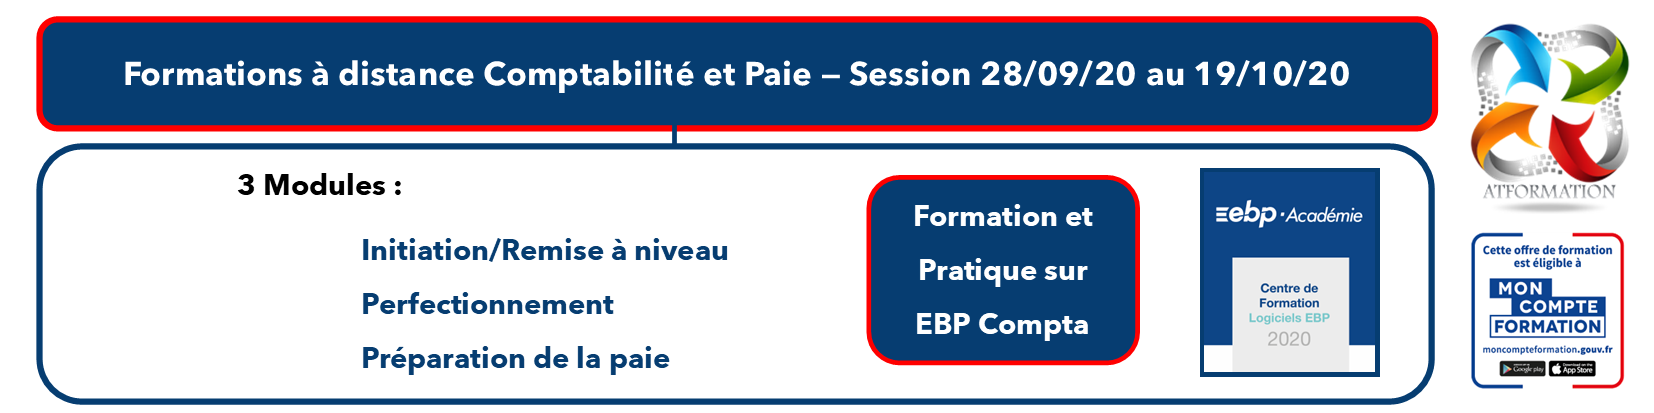 AT FORMATION - COMPTABILITE PAIE MON COMPTE FORMATION CPF SESSION SEPTEMBRE 2020 A DISTANCE